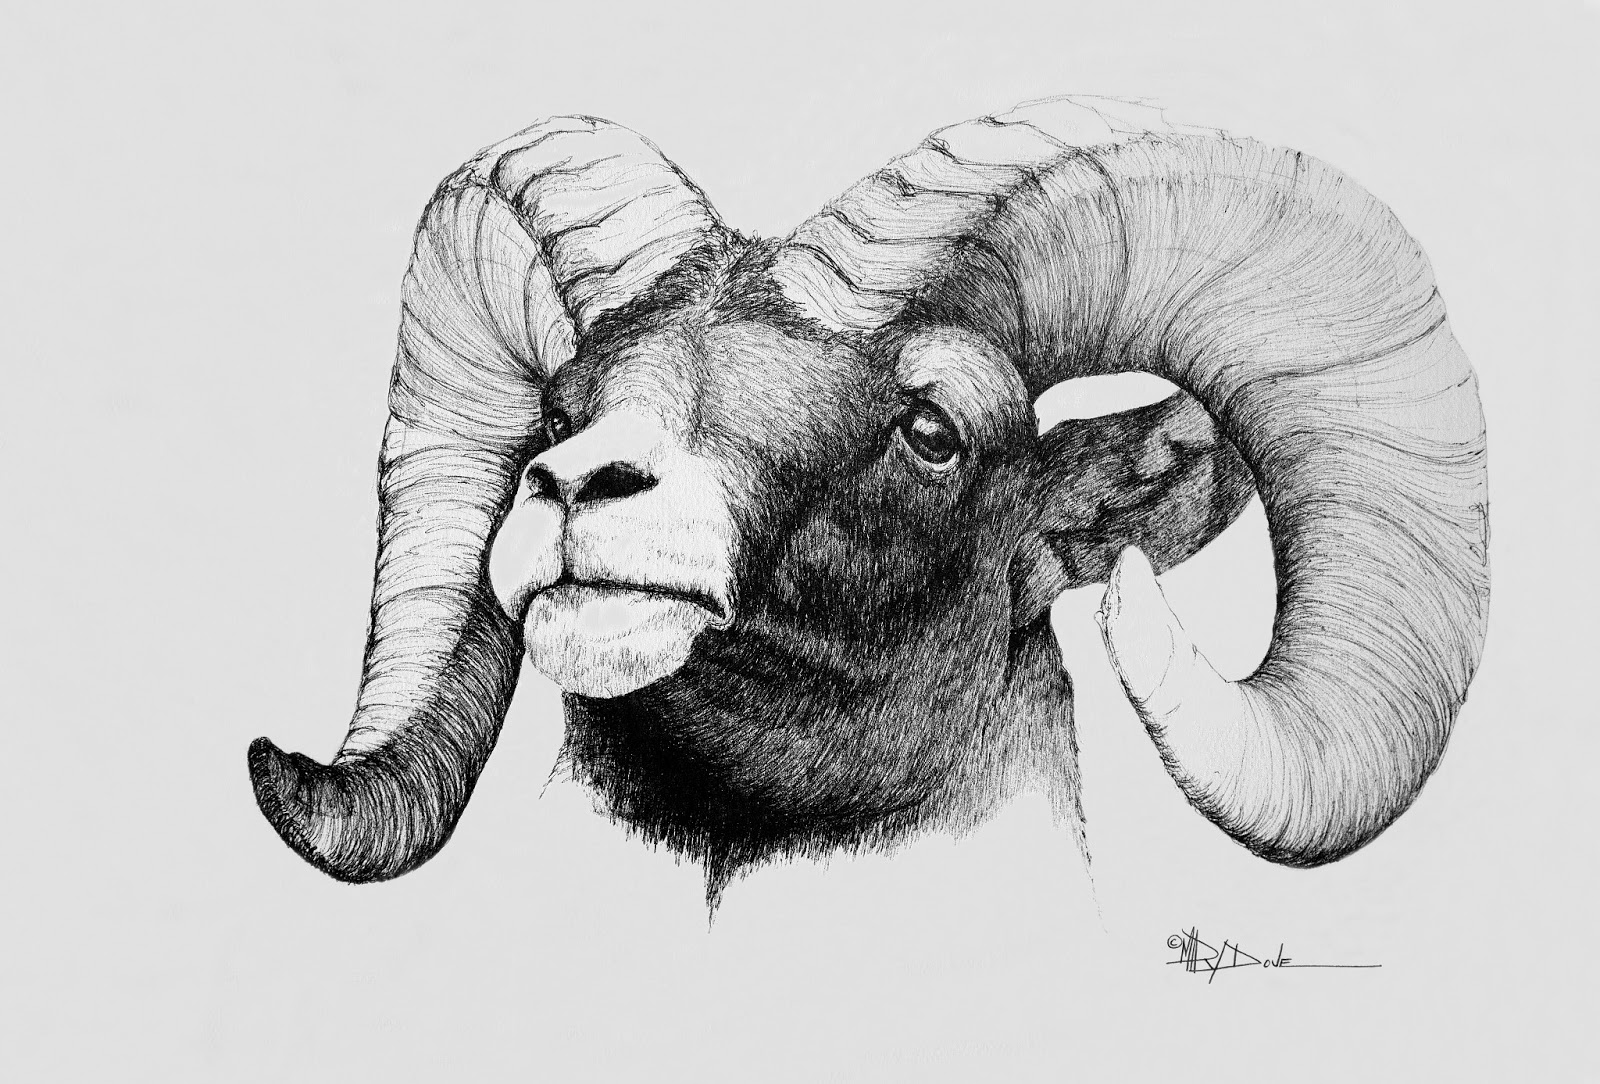 Sheep Horns Drawing in His Horns Which is The